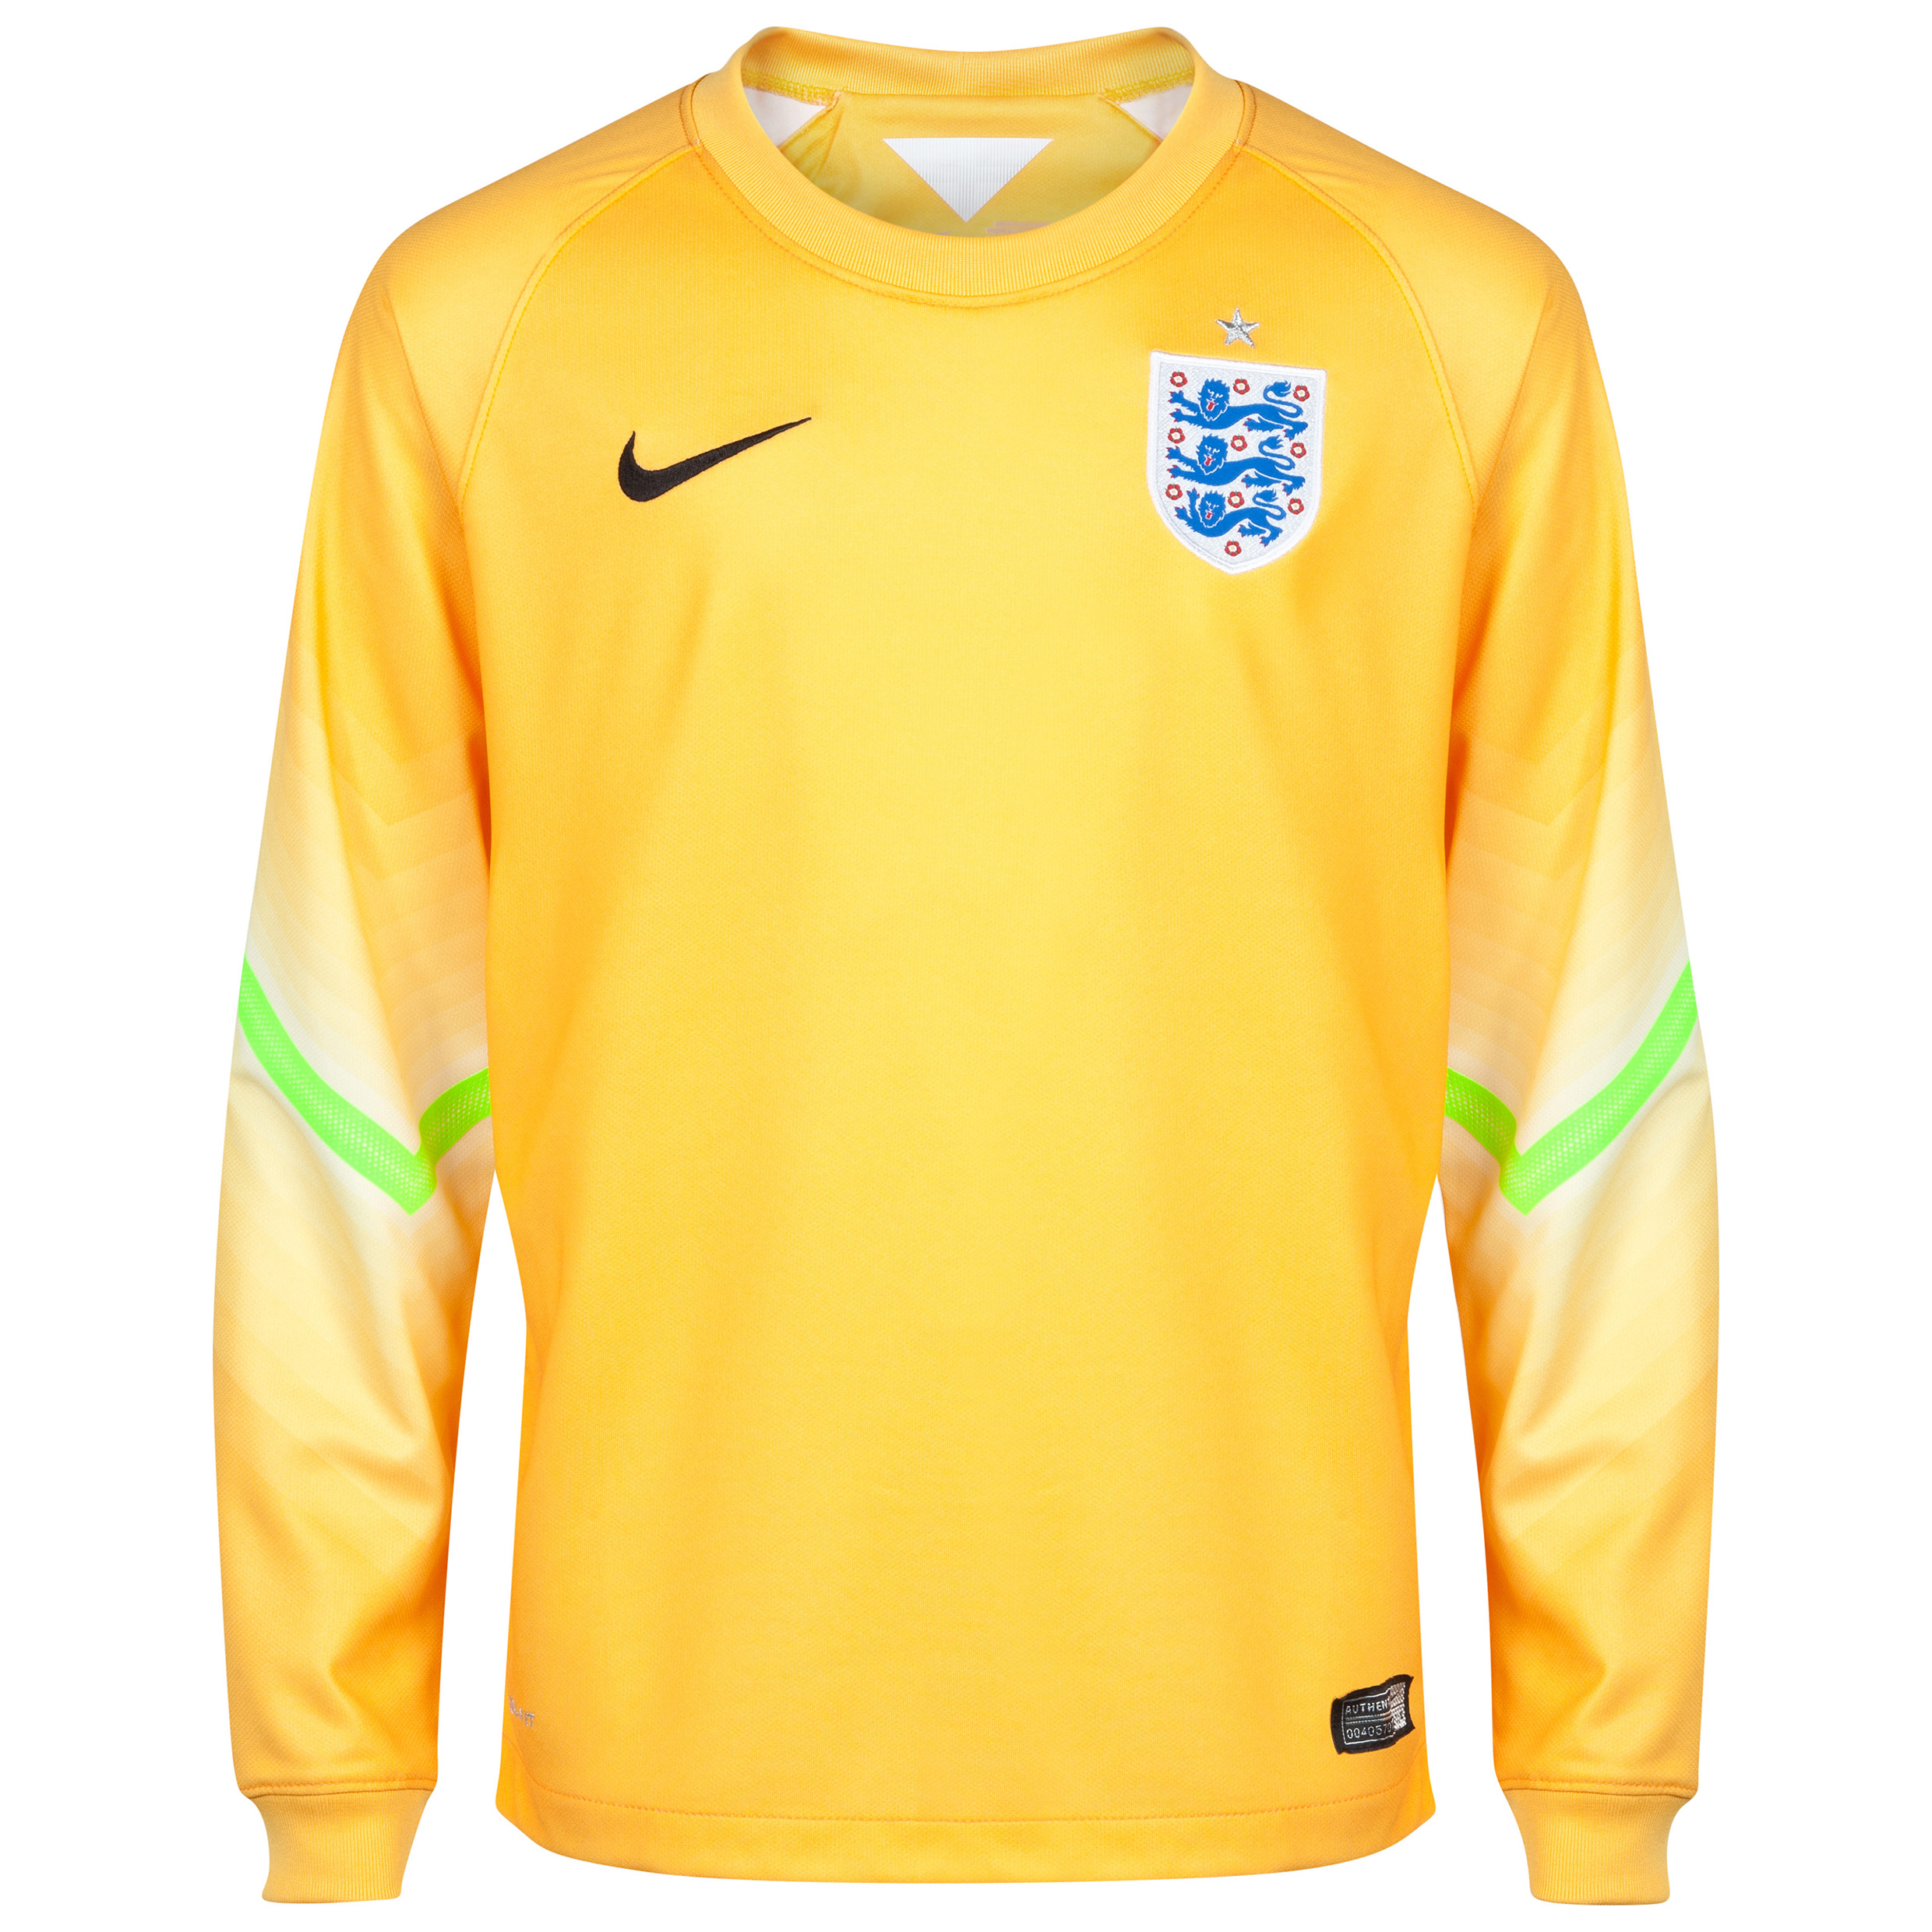 England Home Goalkeeper Shirt 2014/15 Yellow